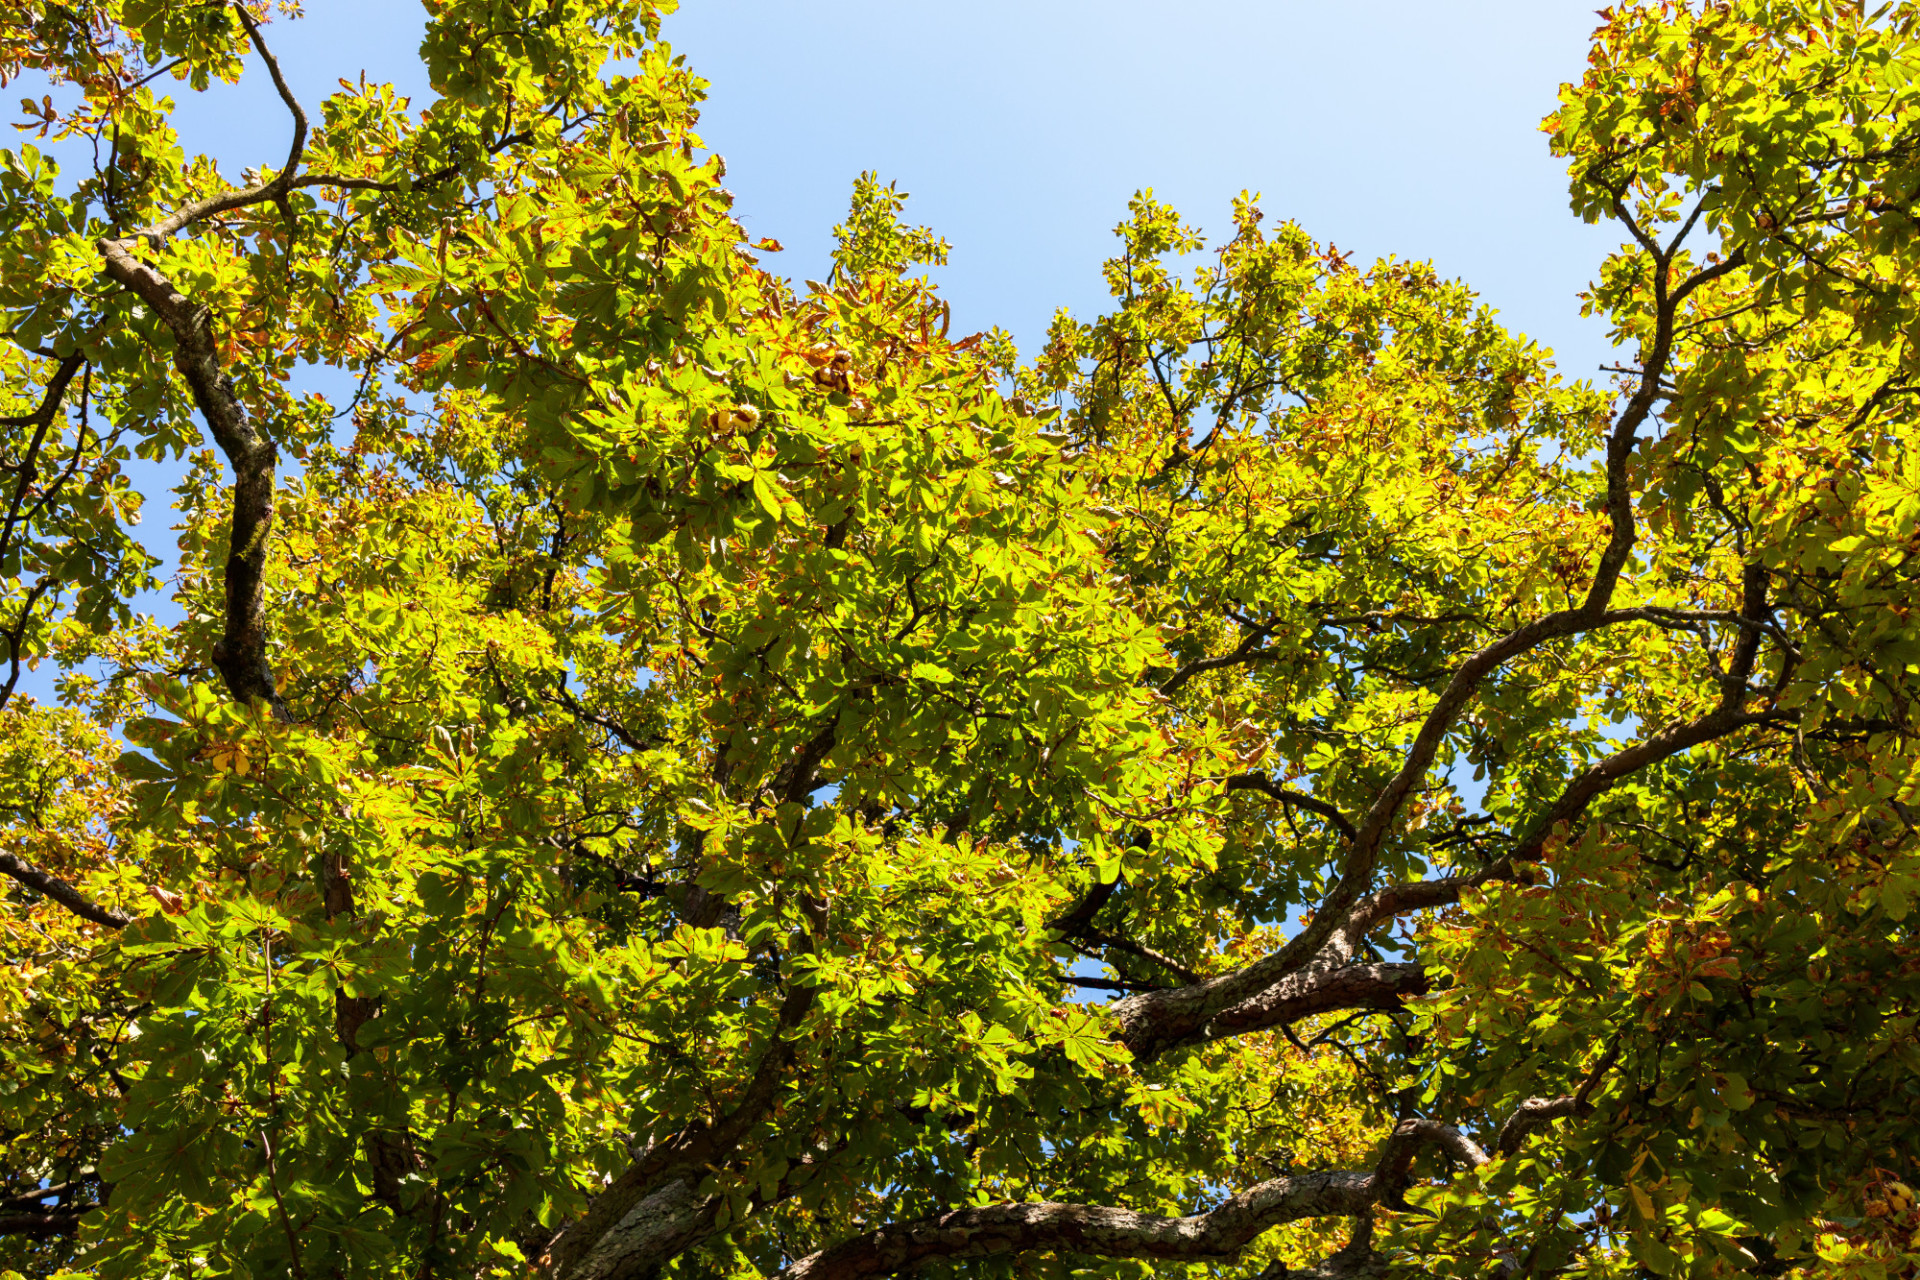 Looking up to a chestnut tree